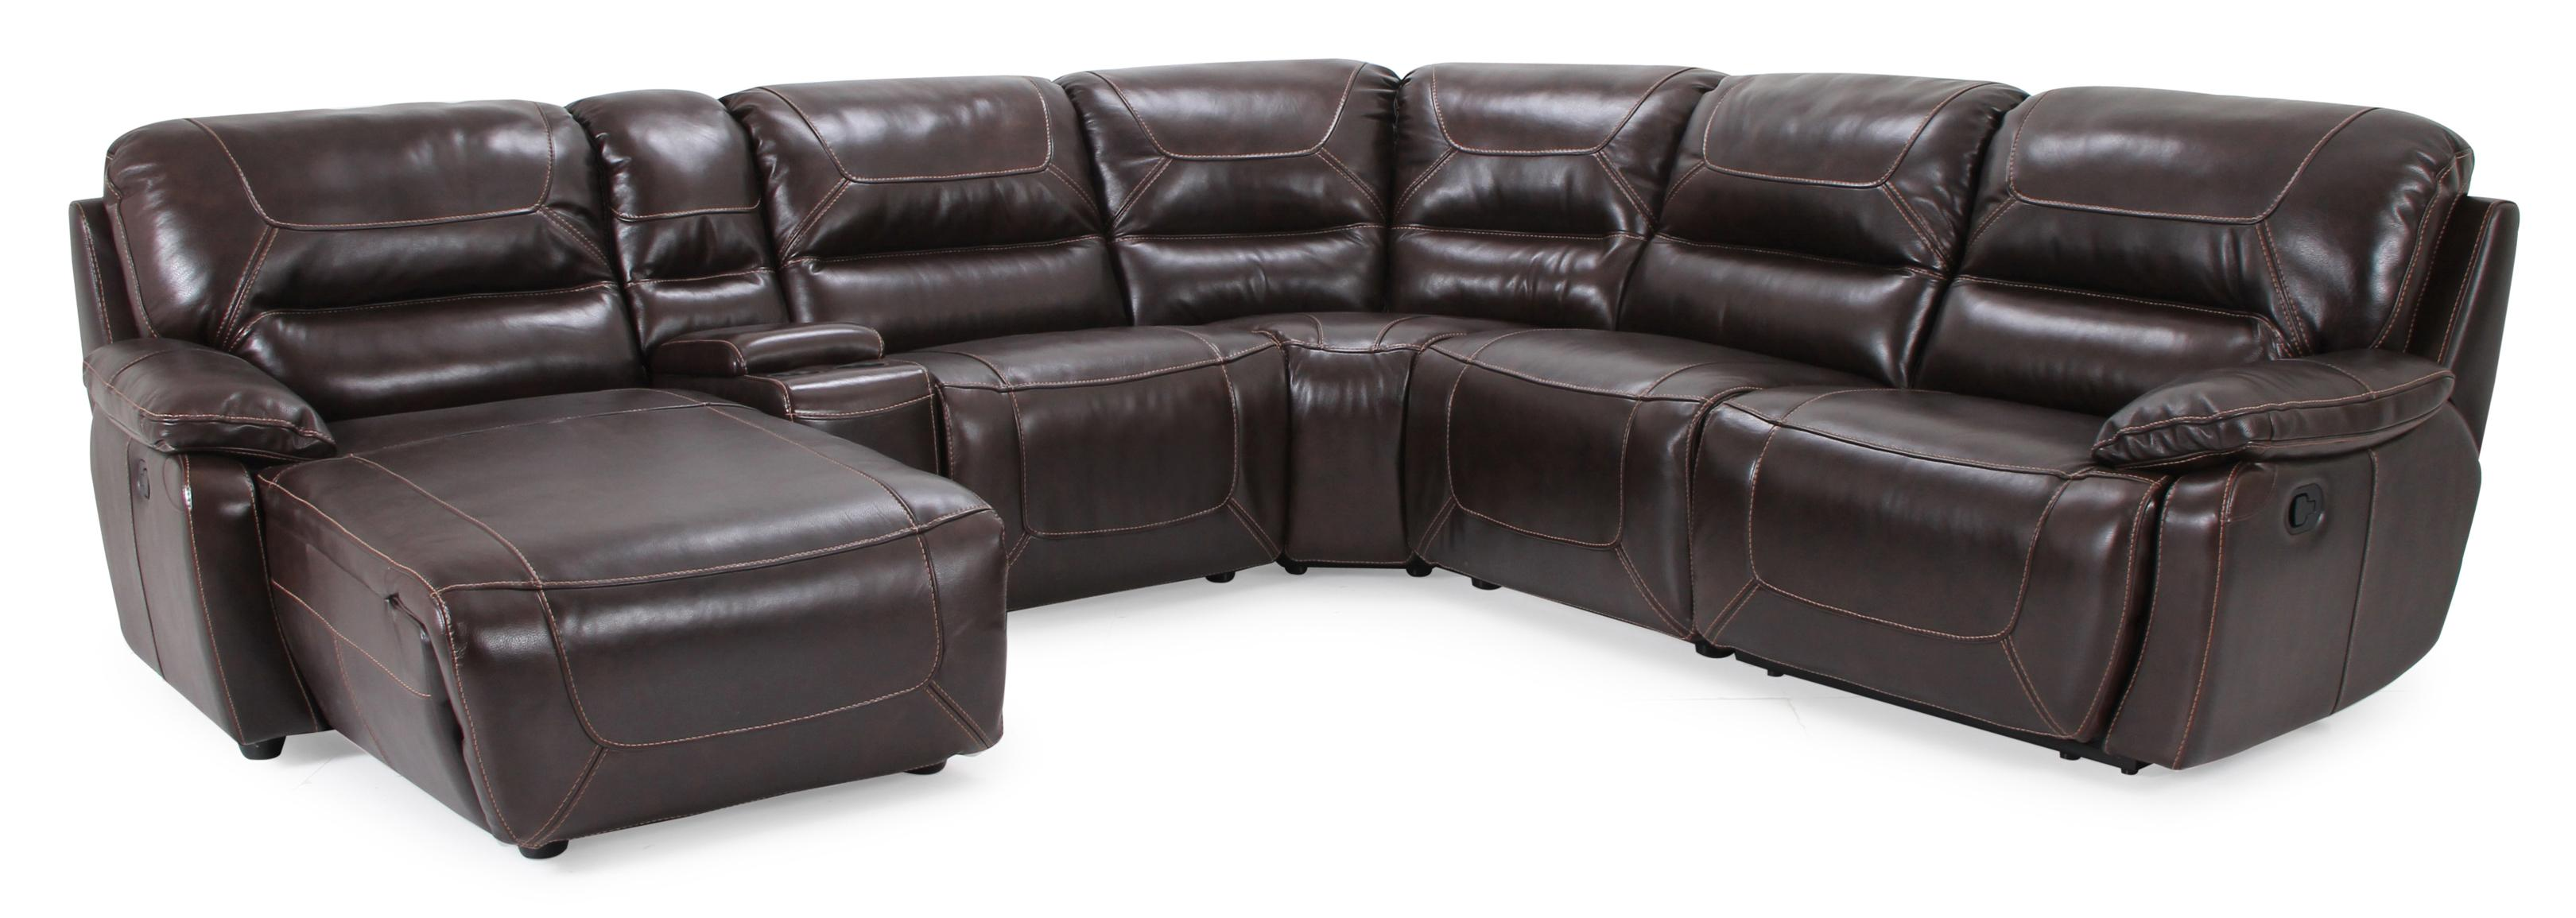 Cheers Sofa RXW9160M Casual 6 piece Reclining Sectional  : products2Fcheerssofa2Fcolor2F91609160m pl2Bhc2B2xd15 1m2Bc2Bar15 1m b from www.becksfurniture.com size 3240 x 1155 jpeg 240kB